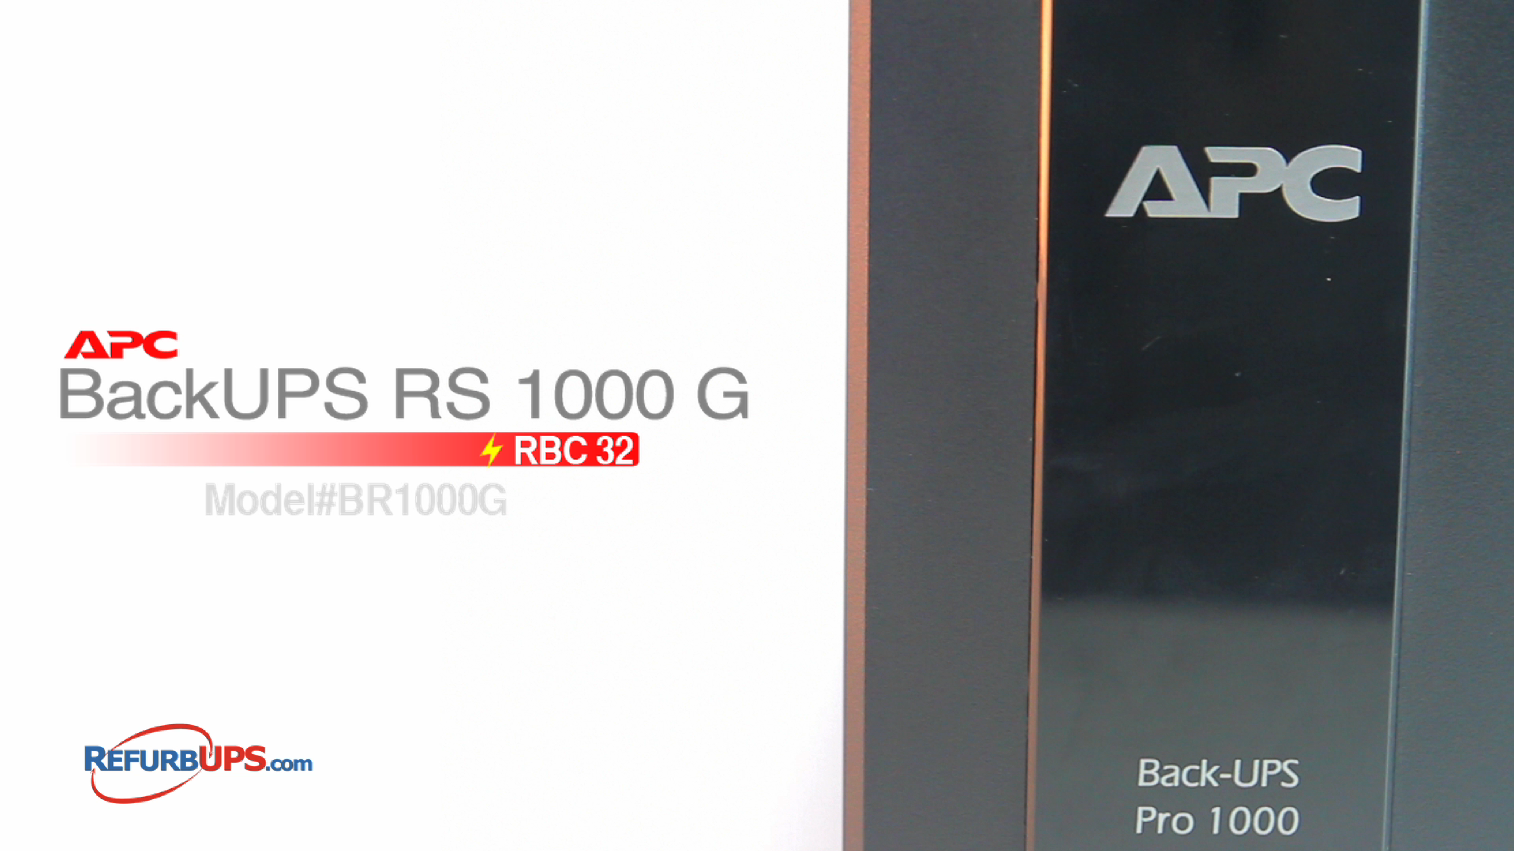 APC RBC 123/124 in APC BAckUPS RS1000G